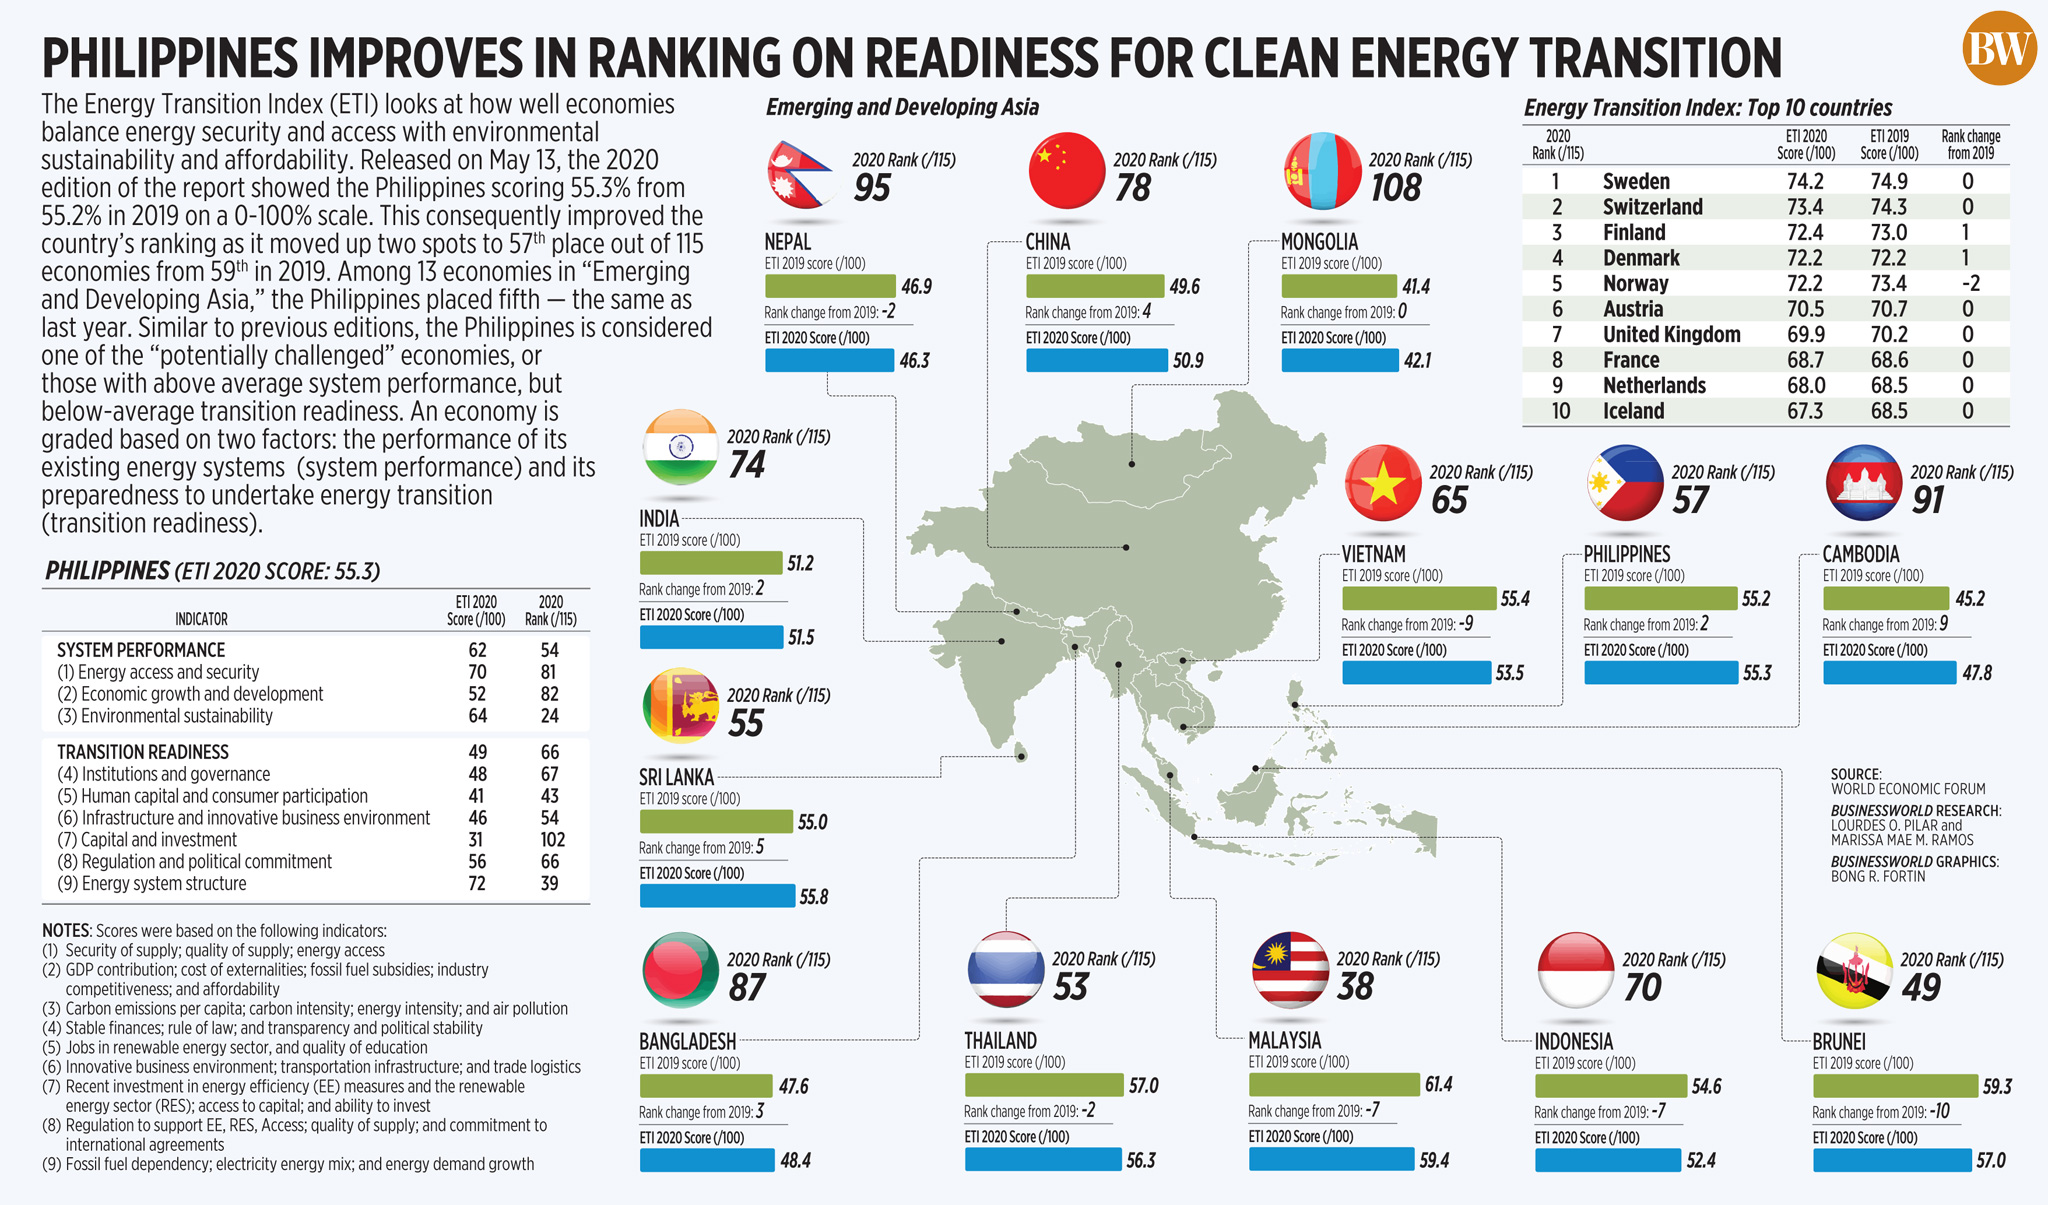 Philippines improves in ranking on readiness for clean energy transition